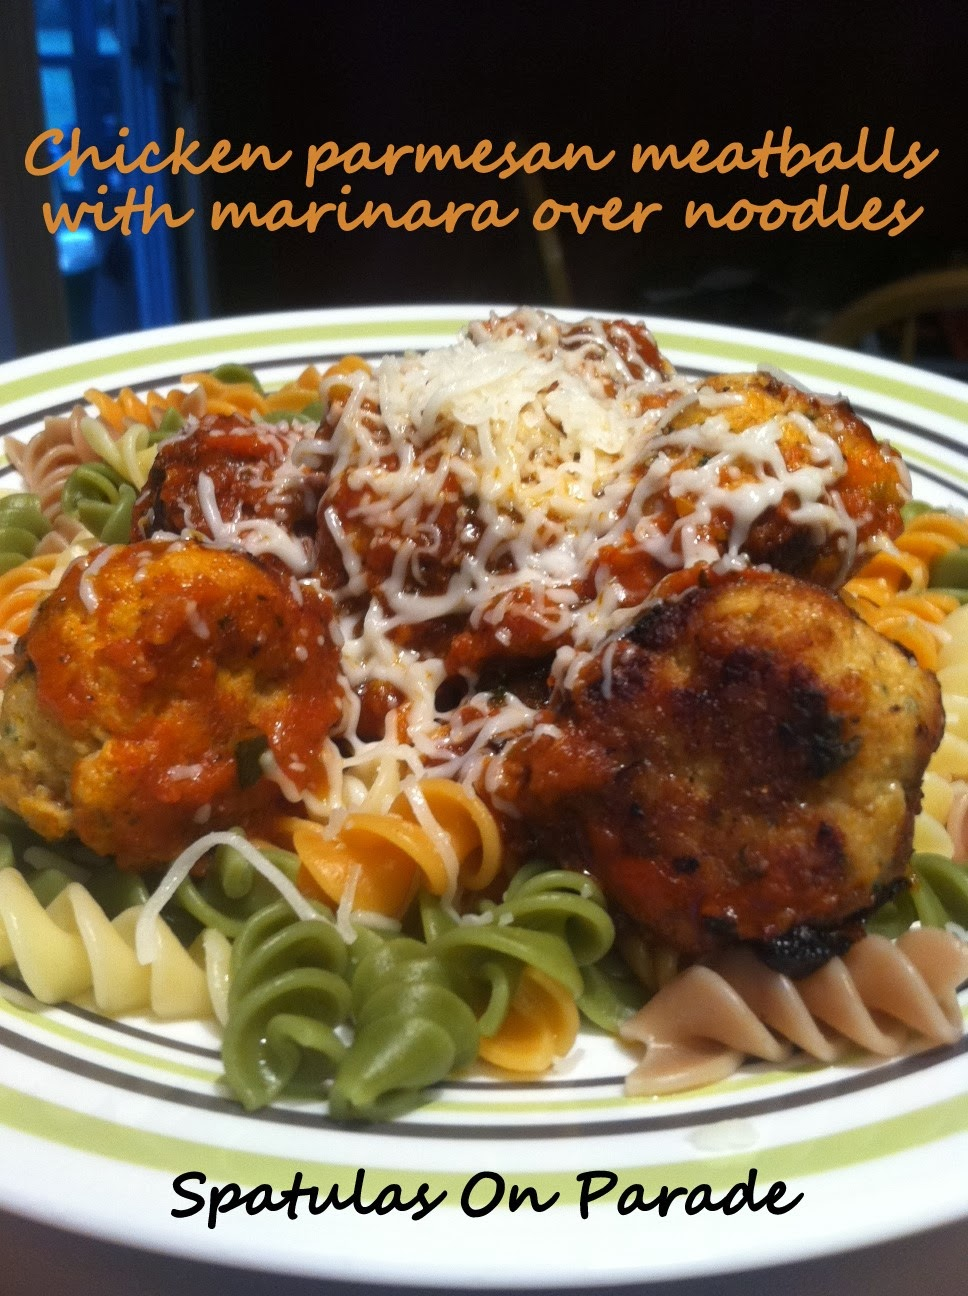 Spatulas On Parade: Chicken Parmesan Meatballs